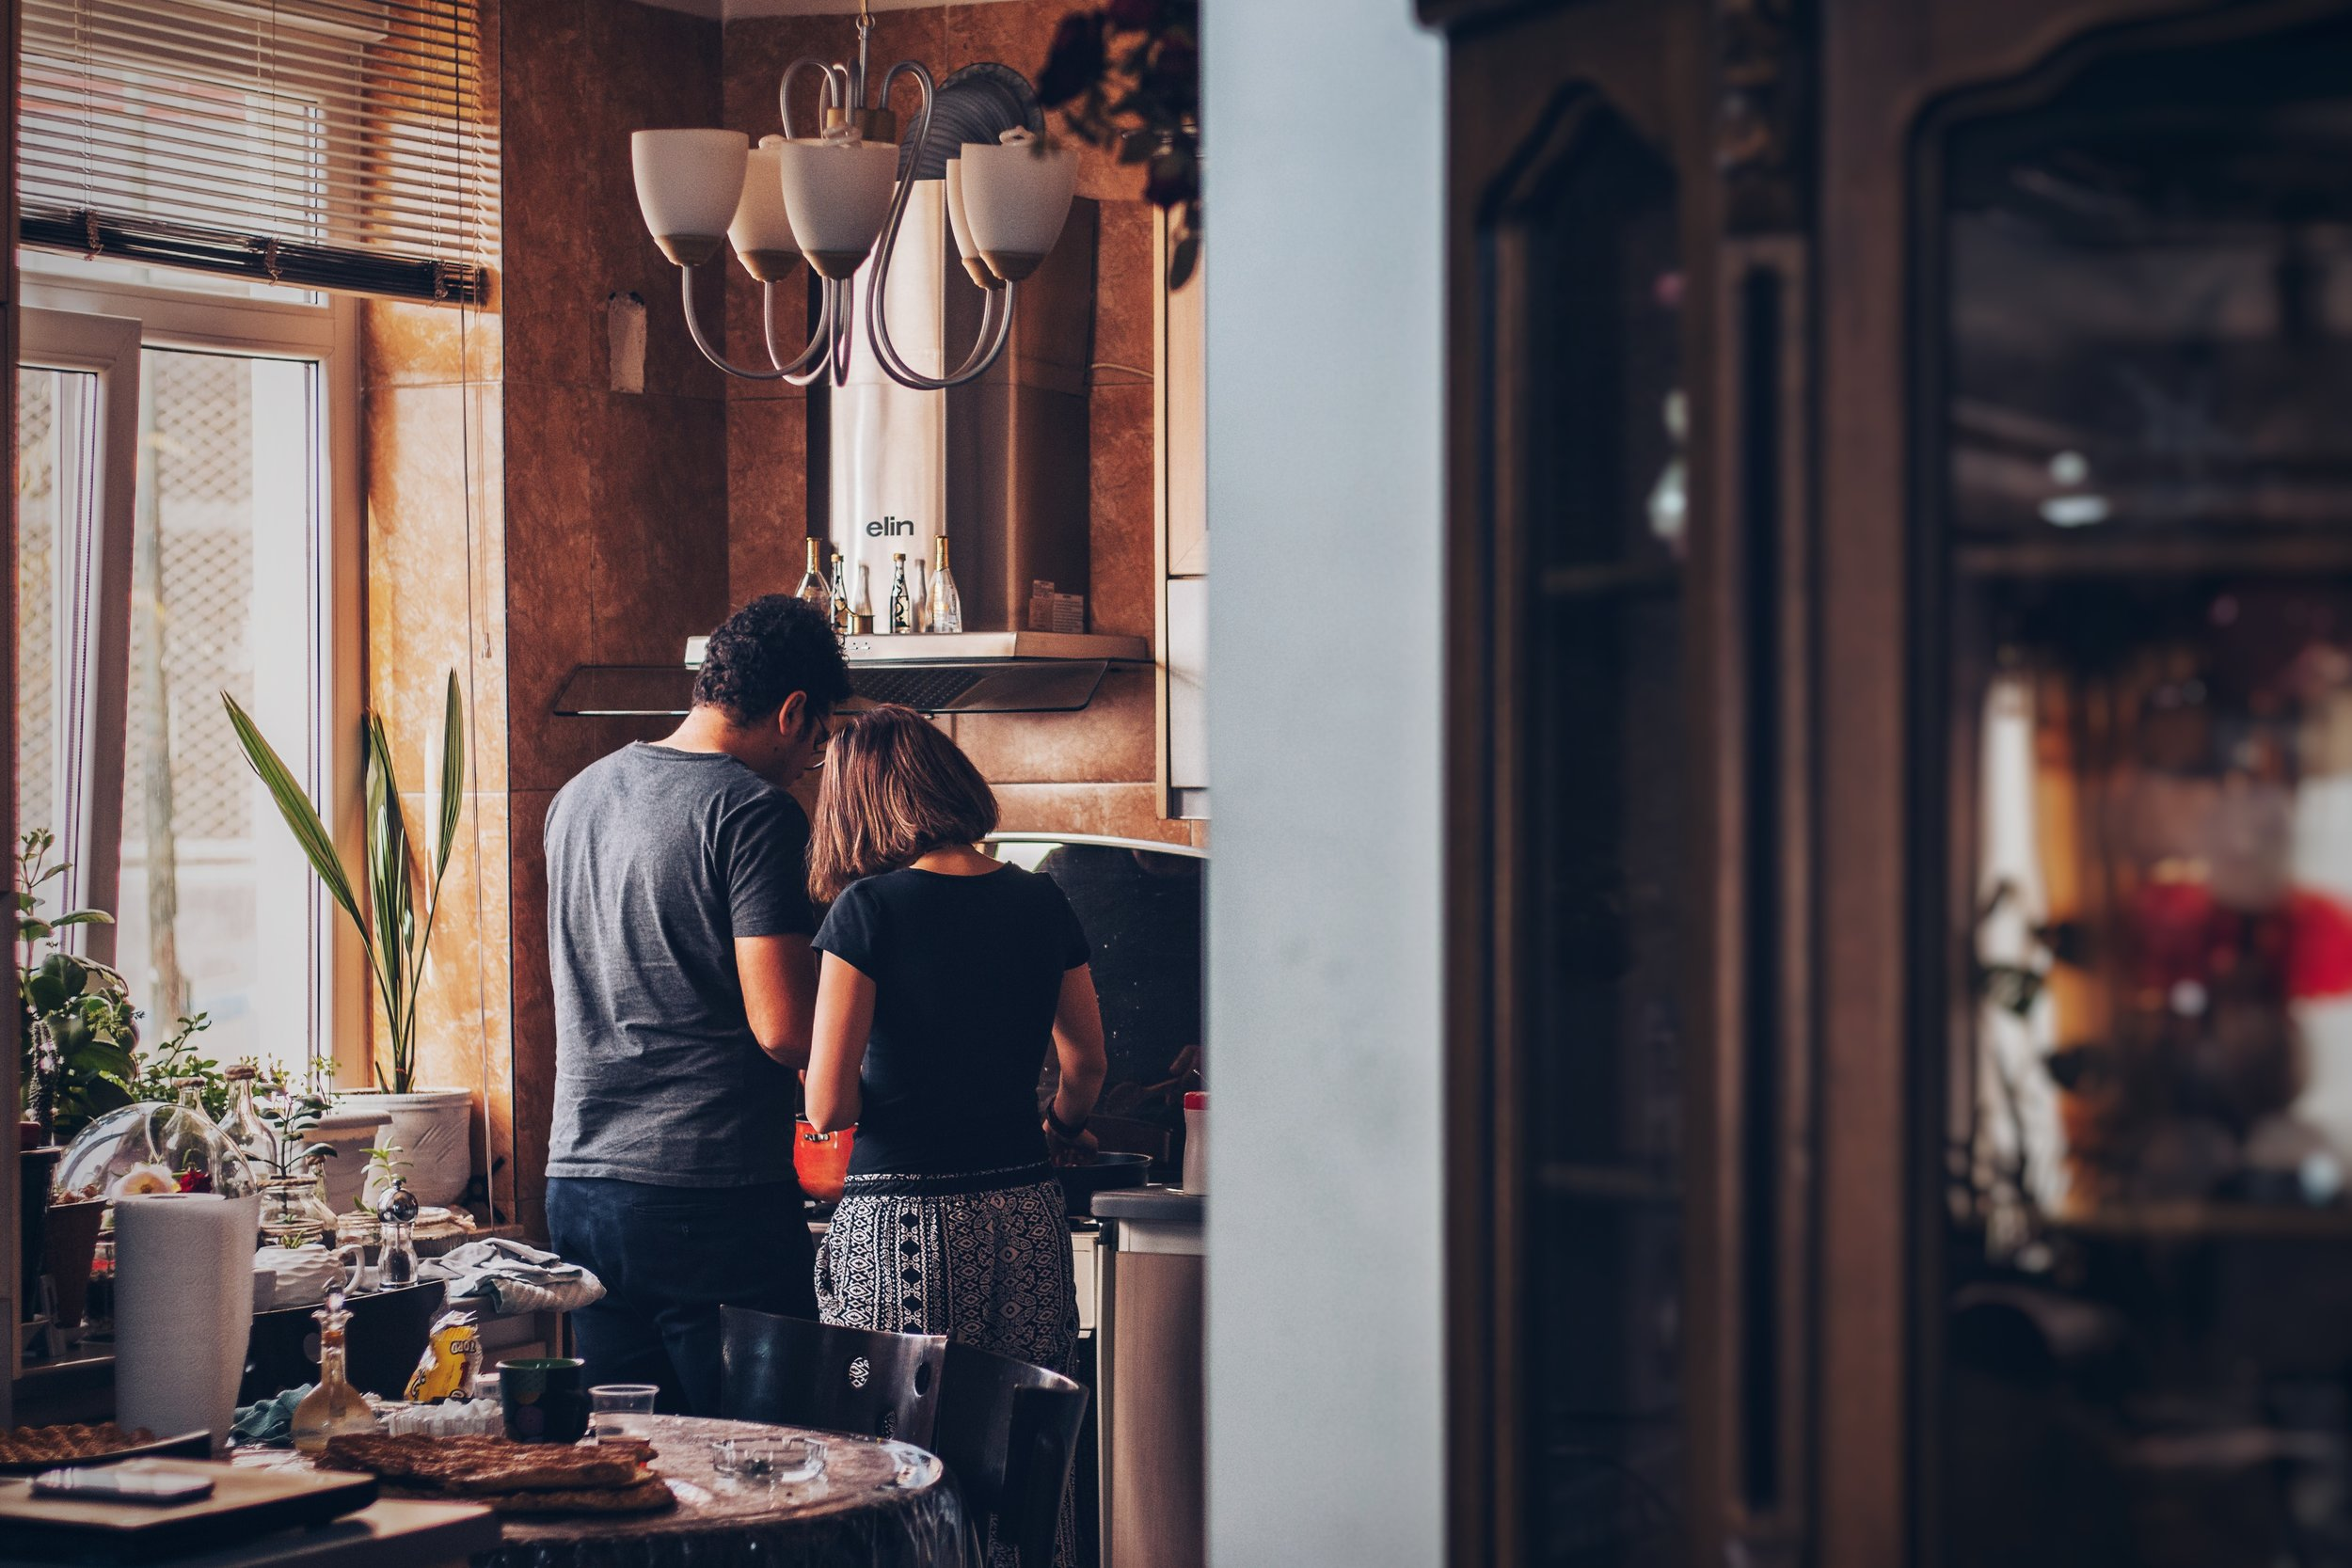 Couple cooking at home